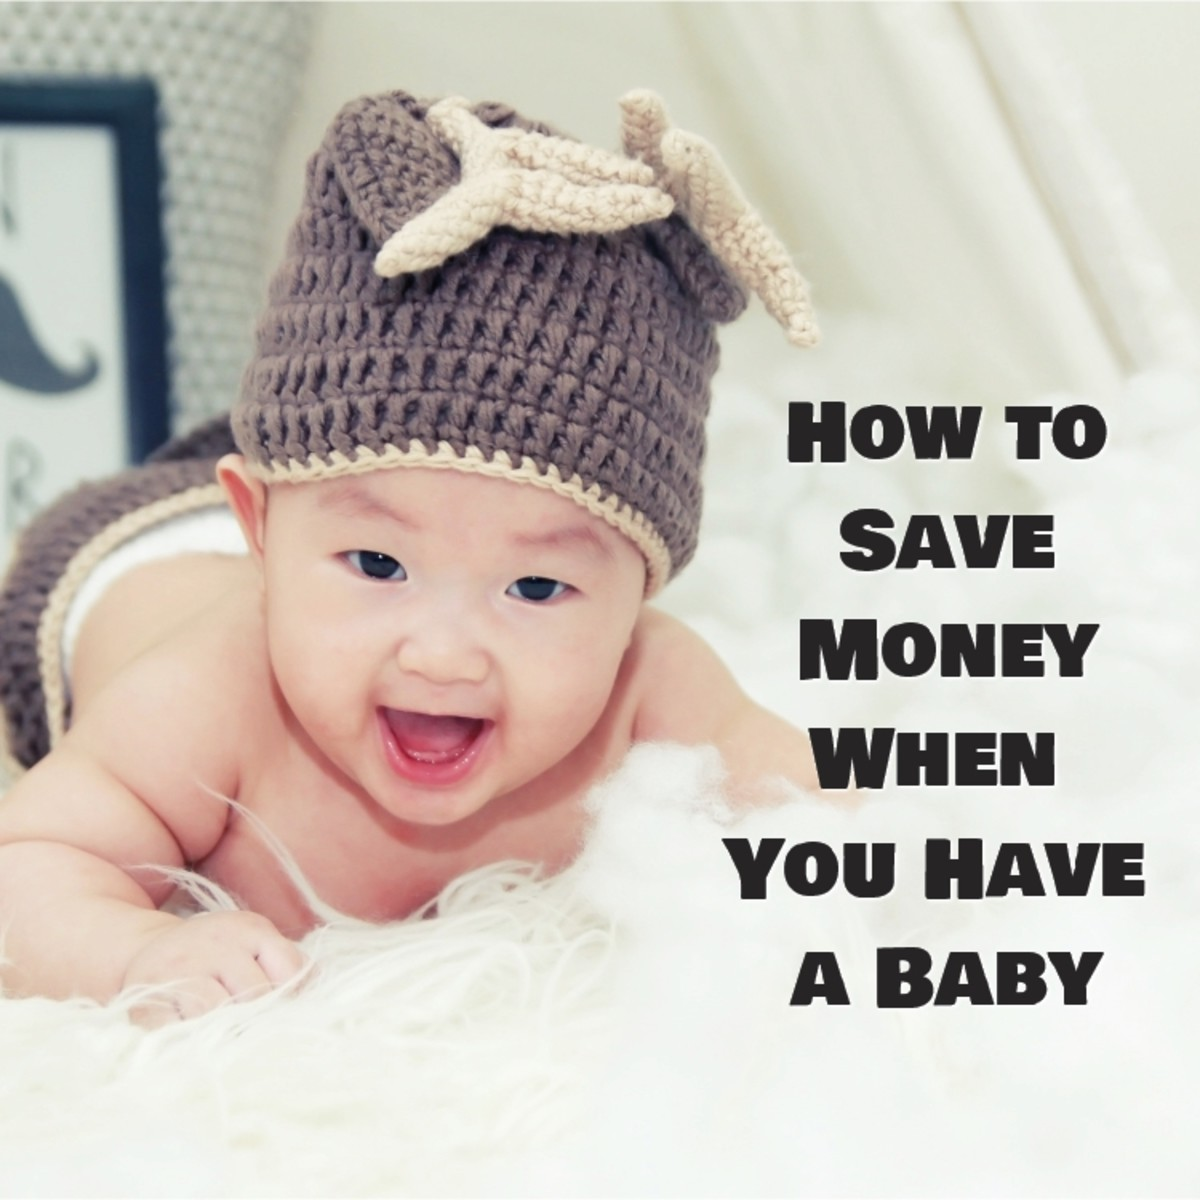 parenting-advice-raising-children-on-a-budget-part-1-baby-care-budgeting-tips